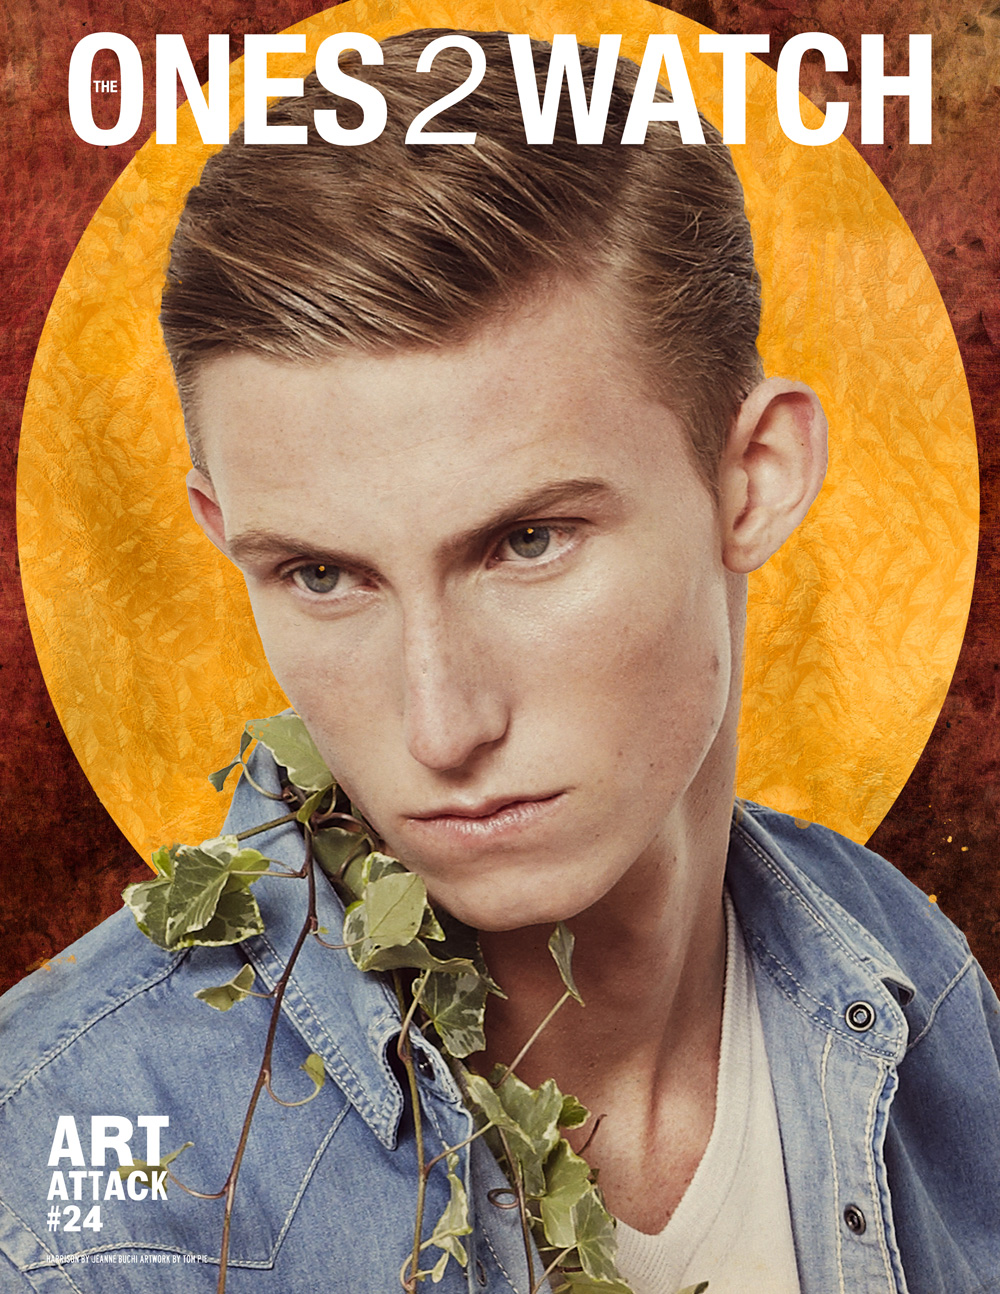 Issue #24 - Harrison by Jeanne Buchi, styling Rickardo Maxwell, cover artwork Tom Pie